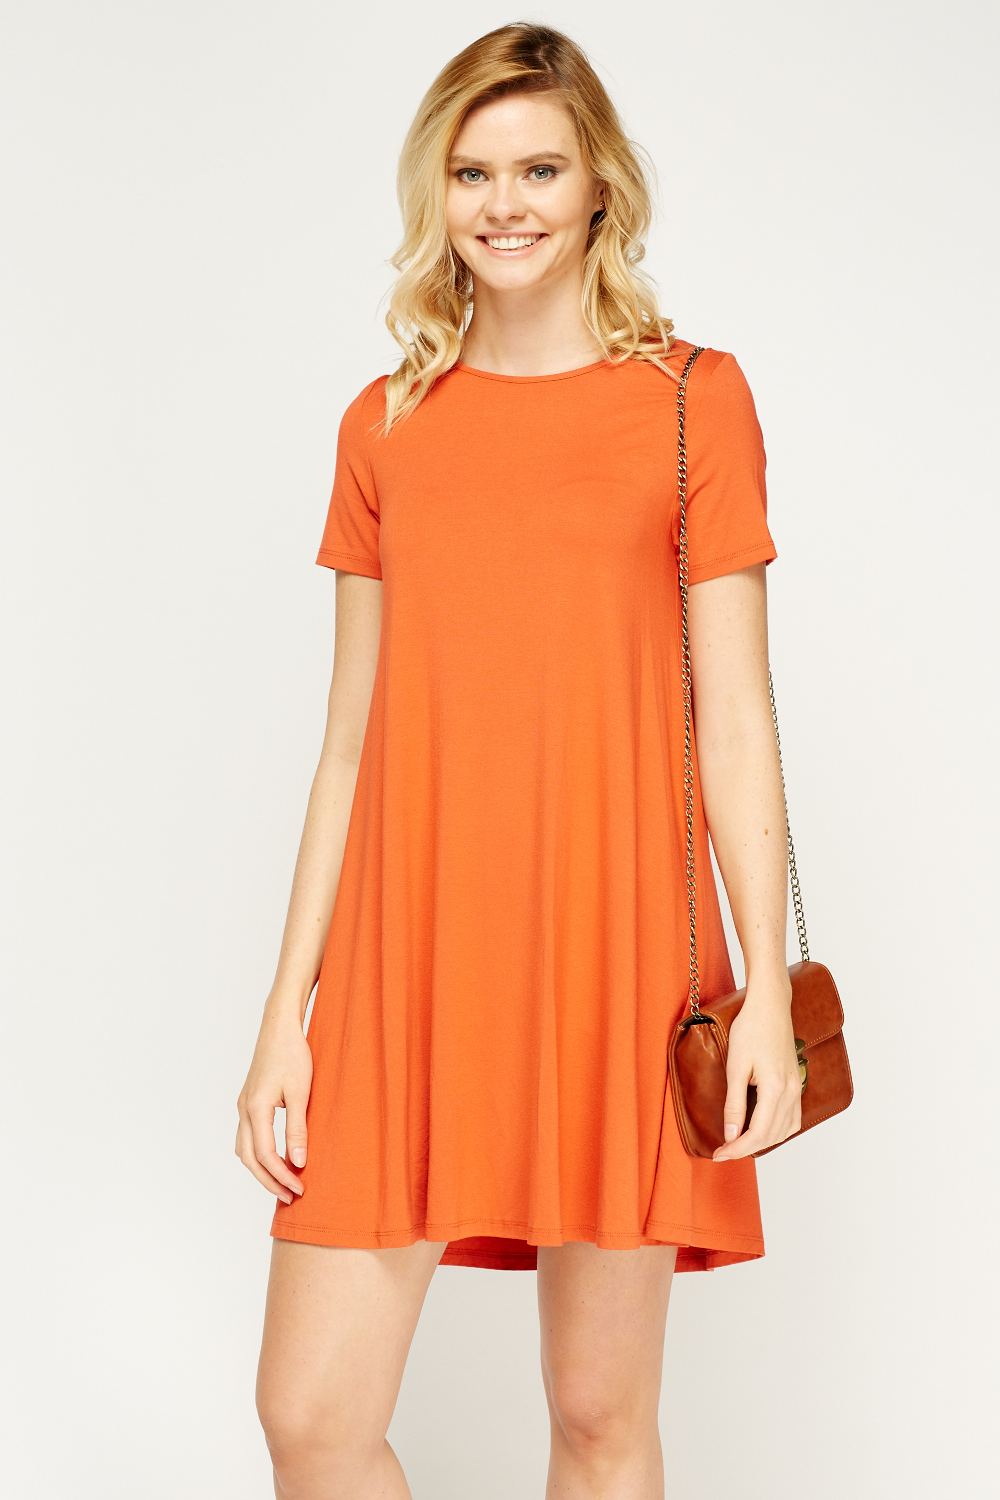 sc 1 st  Everything5Pounds & Orange Tent Dress - Just £5